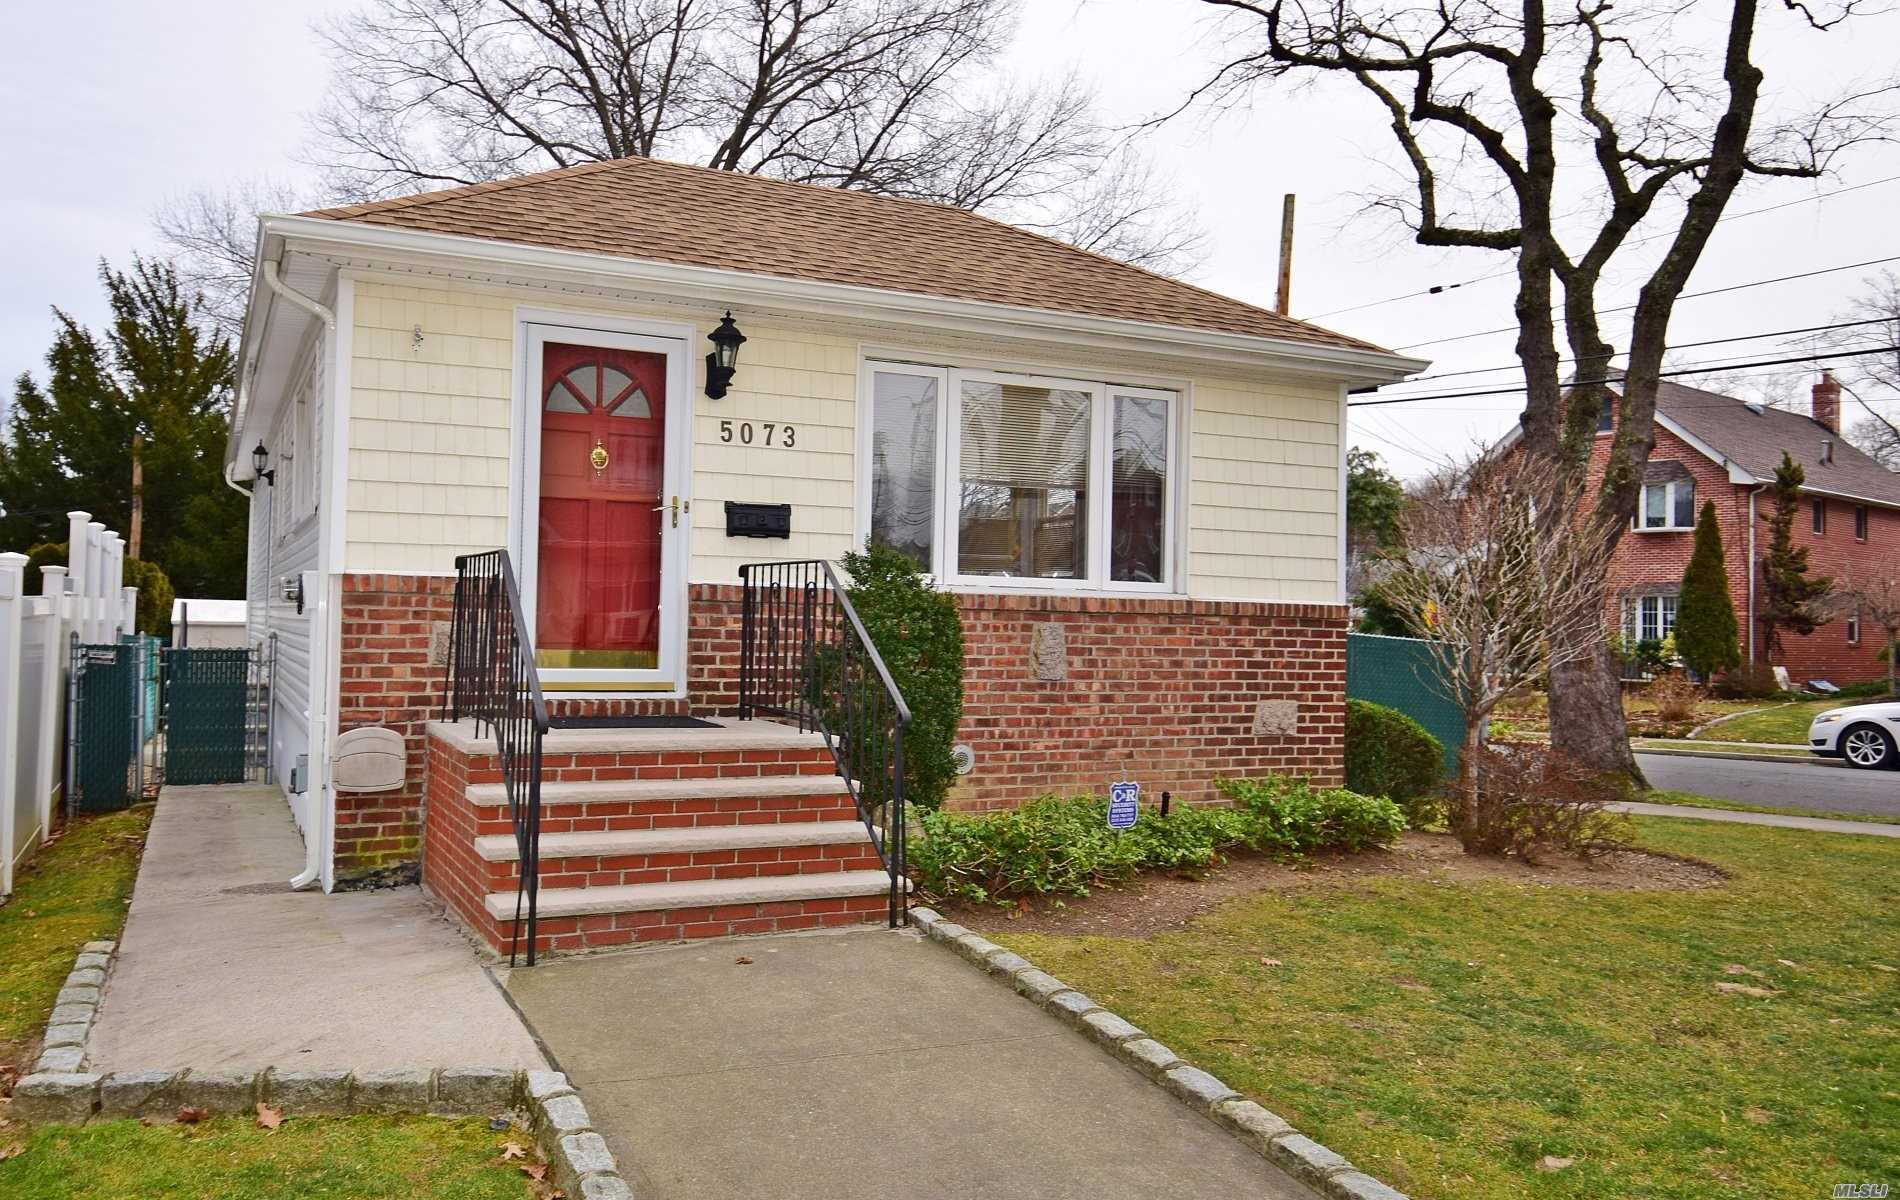 Best Block In Douglaston! Totally Renovated. All New Appliances. New Roof, Gutters And Leaders. New Siding, New Windows, Two New Bathrooms, All New Plumbing, New Gas Fired Hot Air Heating System, New Cac System, New Hot Water Heater, Central Alarm System, Ig Sprinklers Throughout Property.